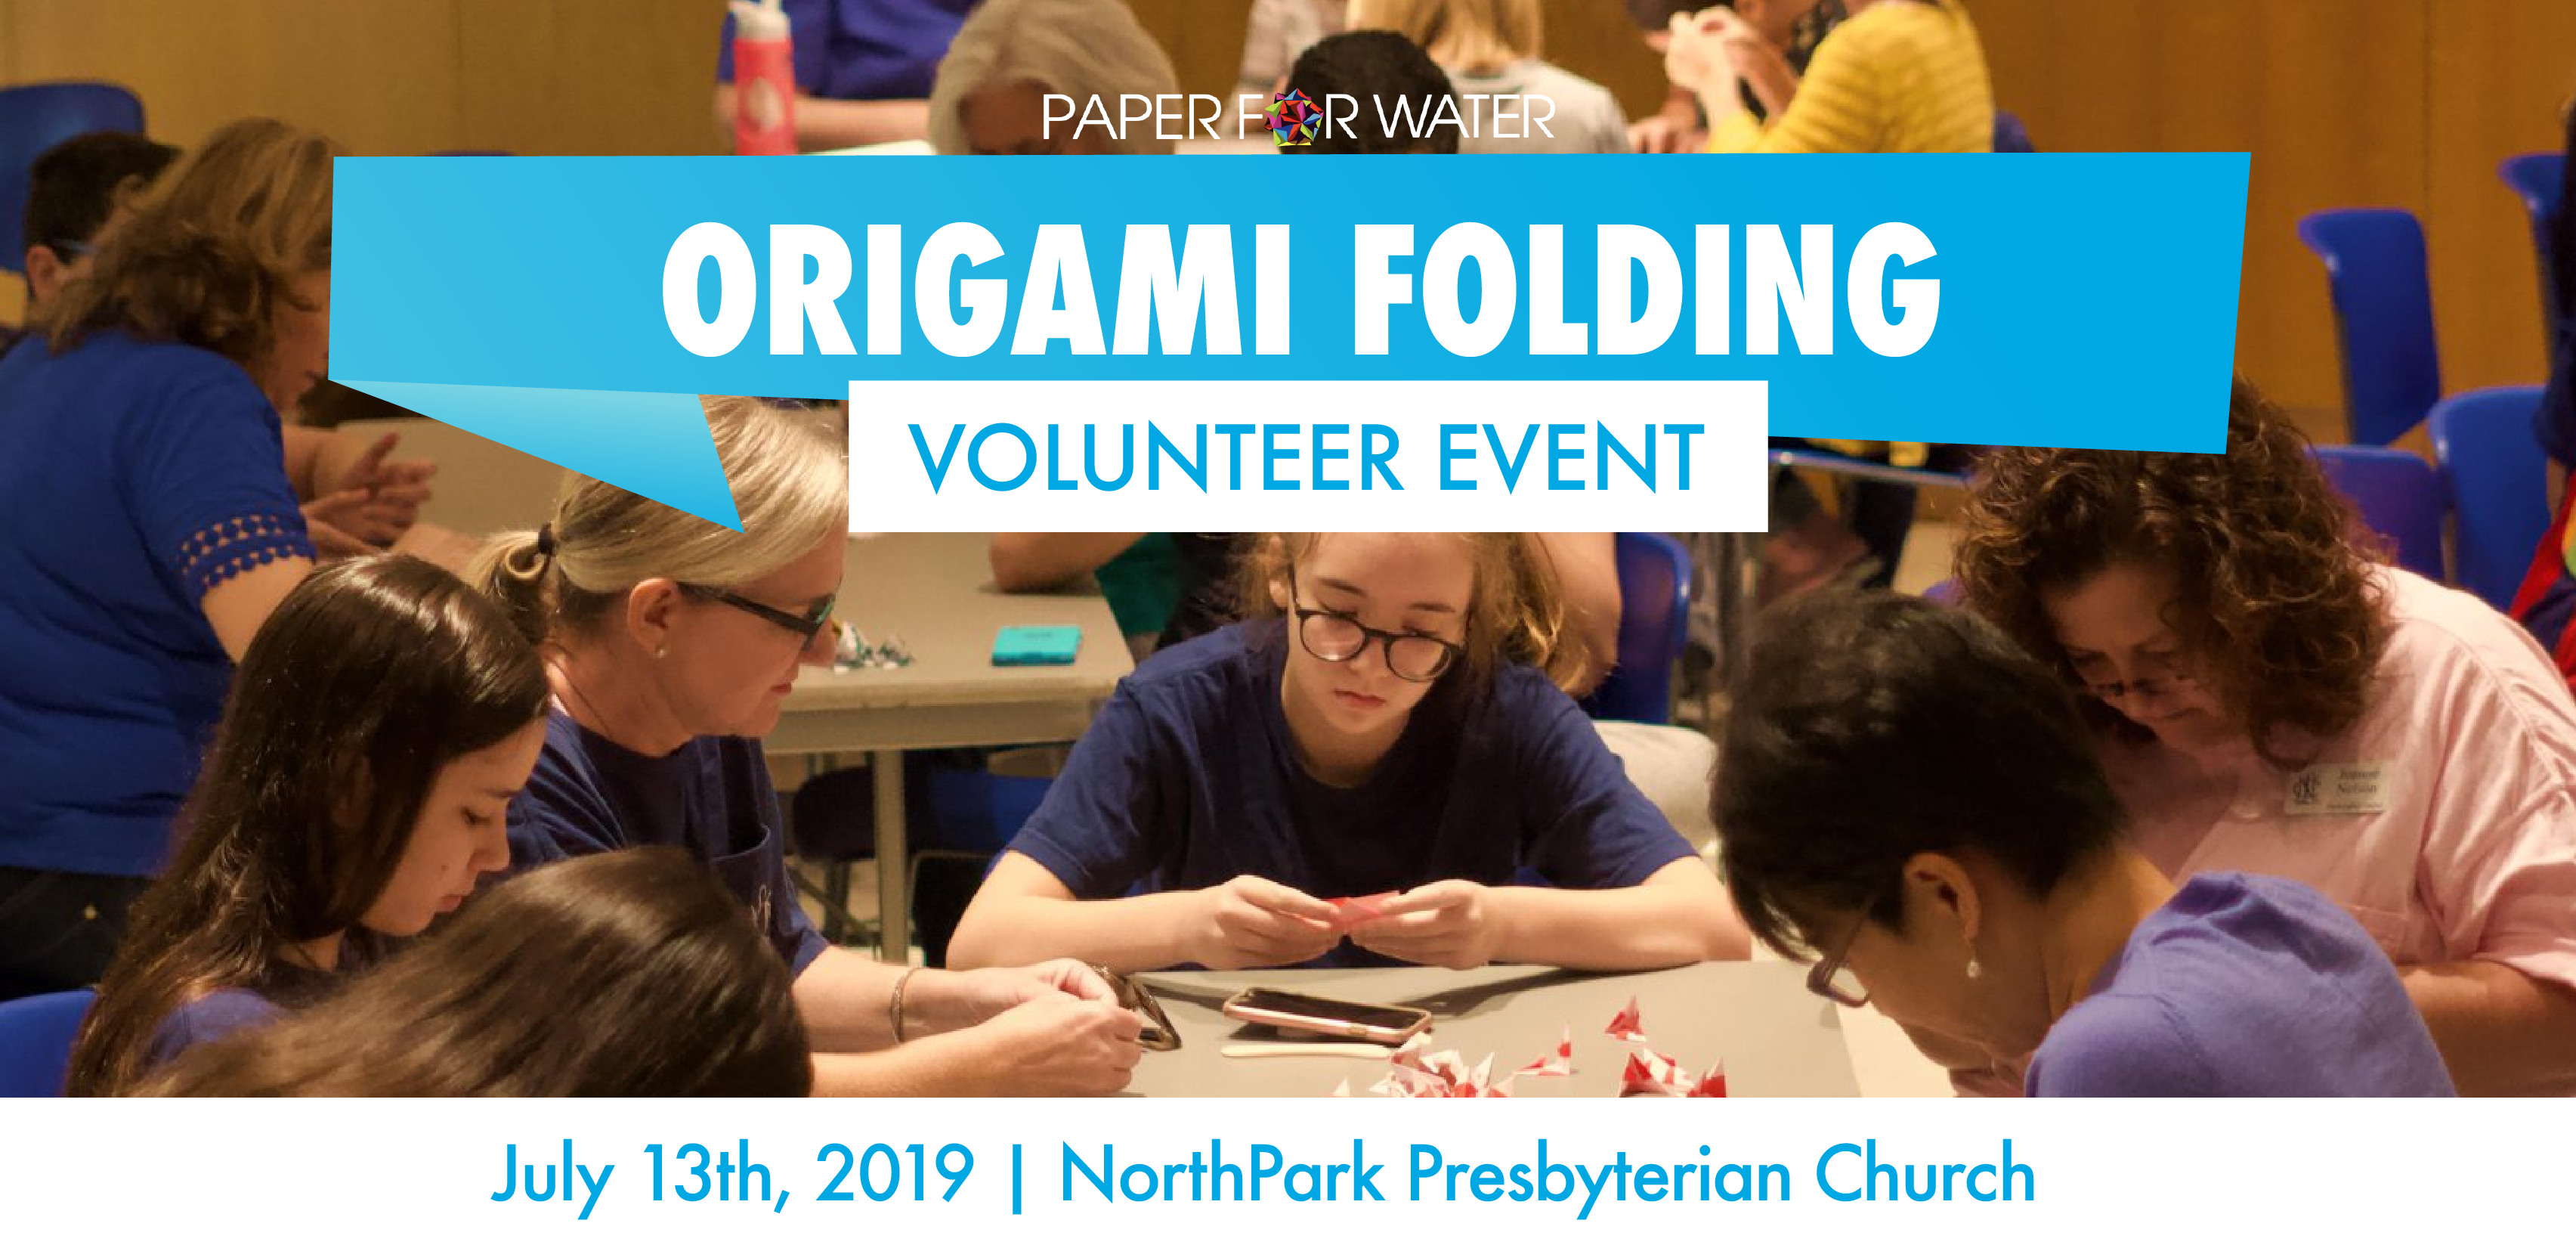 Origami folding volunteer event 07